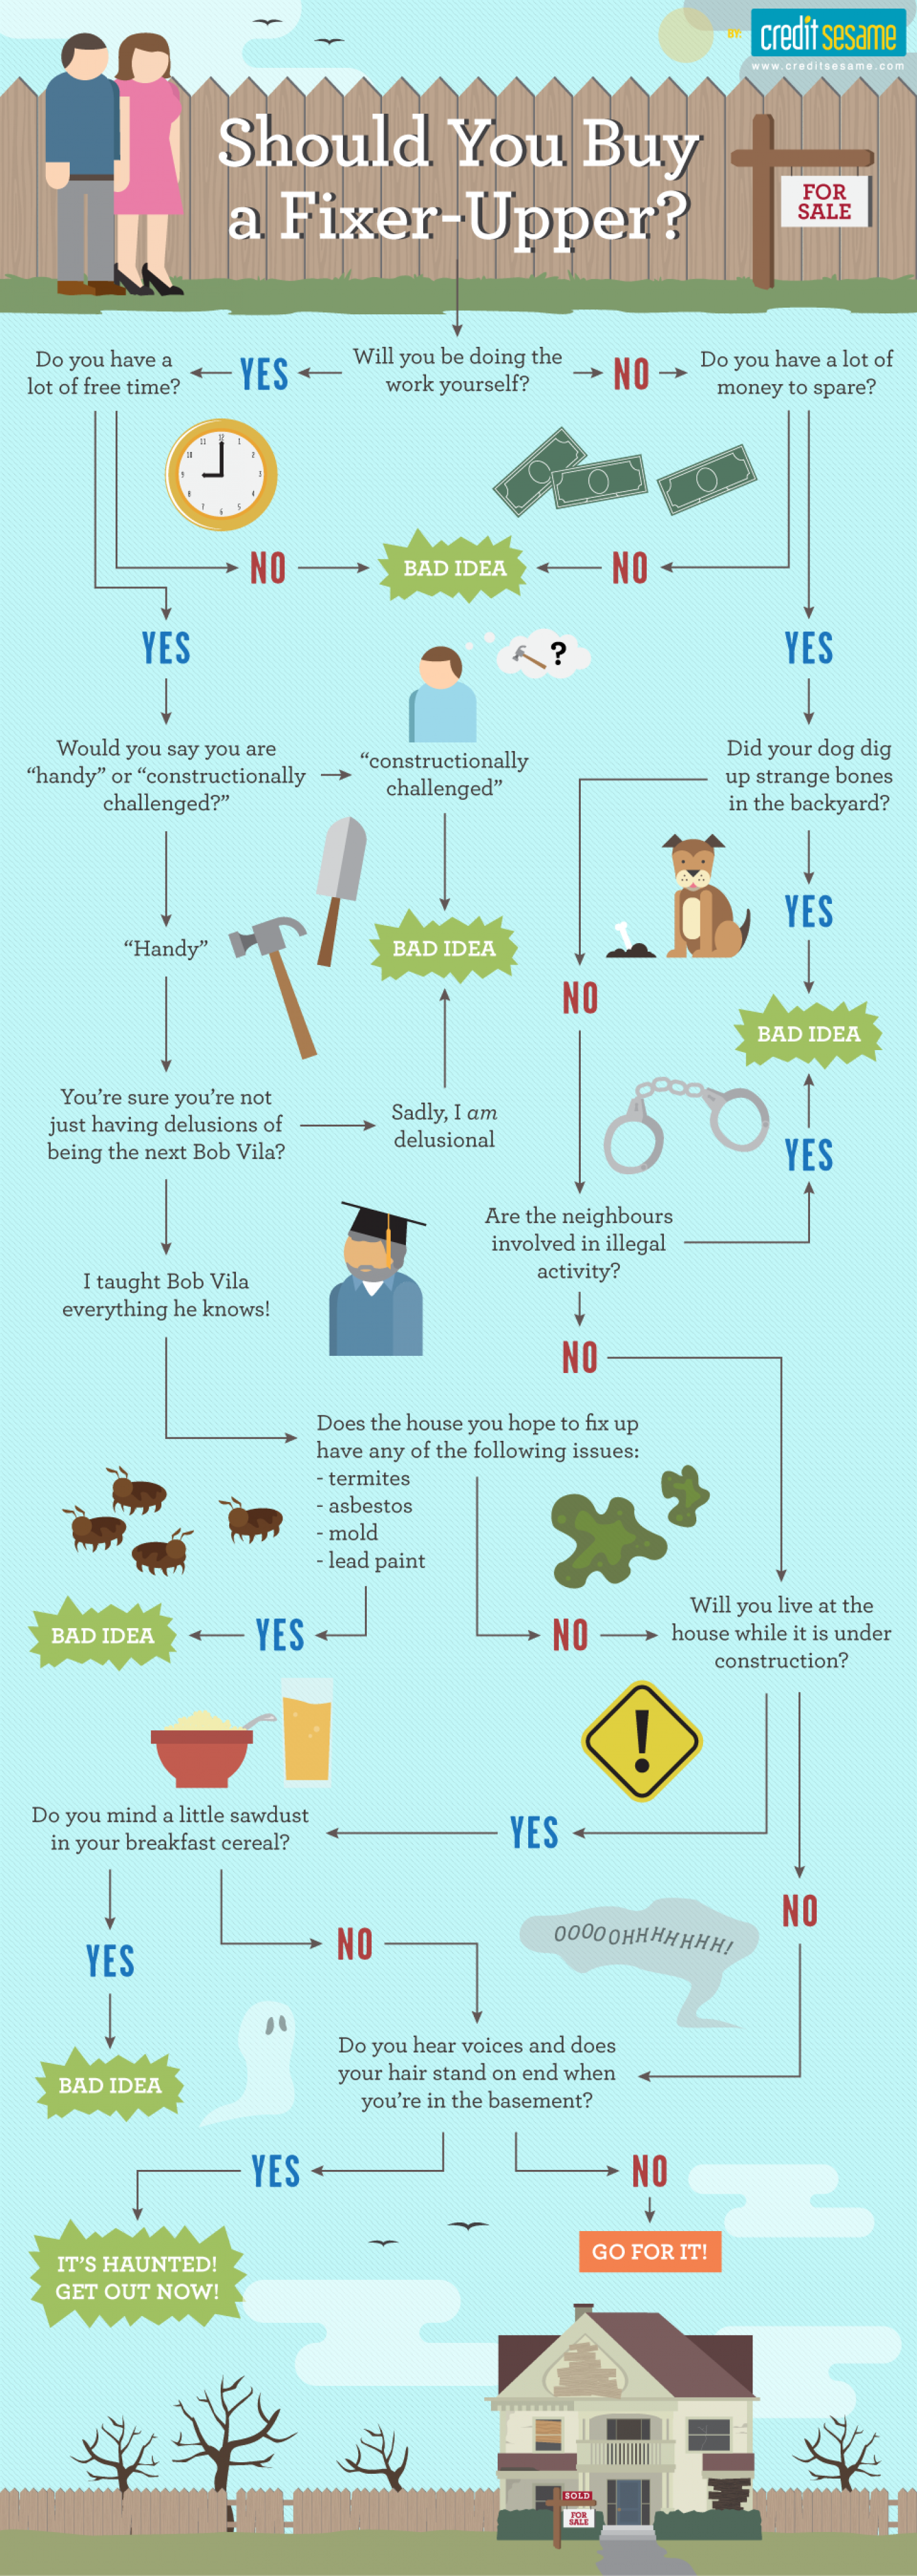 Should You Buy A Fixer-Upper? Infographic